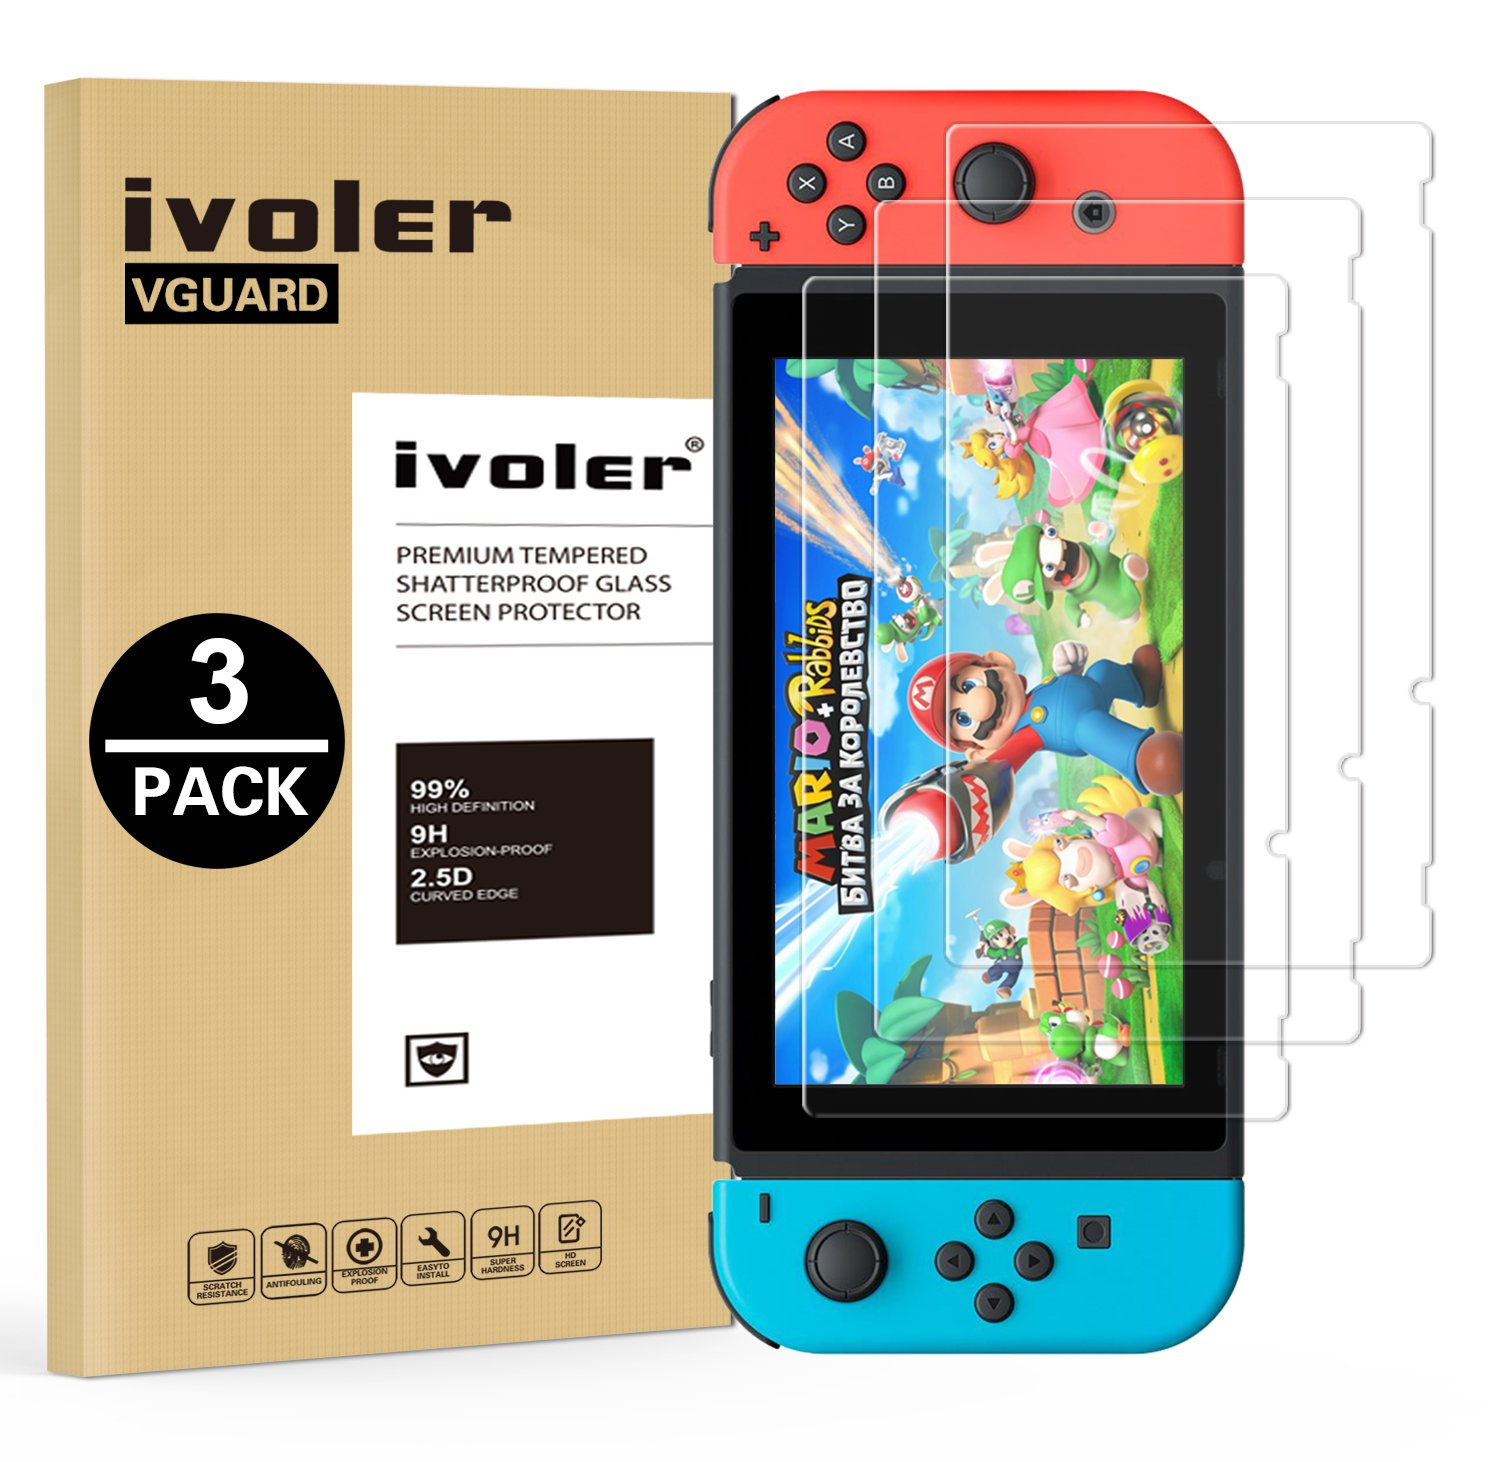 [3 Pack] Nintendo Switch Screen Protector Tempered Glass, iVoler Transparent HD Clear Anti-Scratch Screen Protector Compatible Nintendo Switch, Life Time Replacement Warranty - 71Djw4jT5FL - [3 Pack] Nintendo Switch Screen Protector Tempered Glass, iVoler Transparent HD Clear Anti-Scratch Screen Protector Compatible Nintendo Switch, Life Time Replacement Warranty